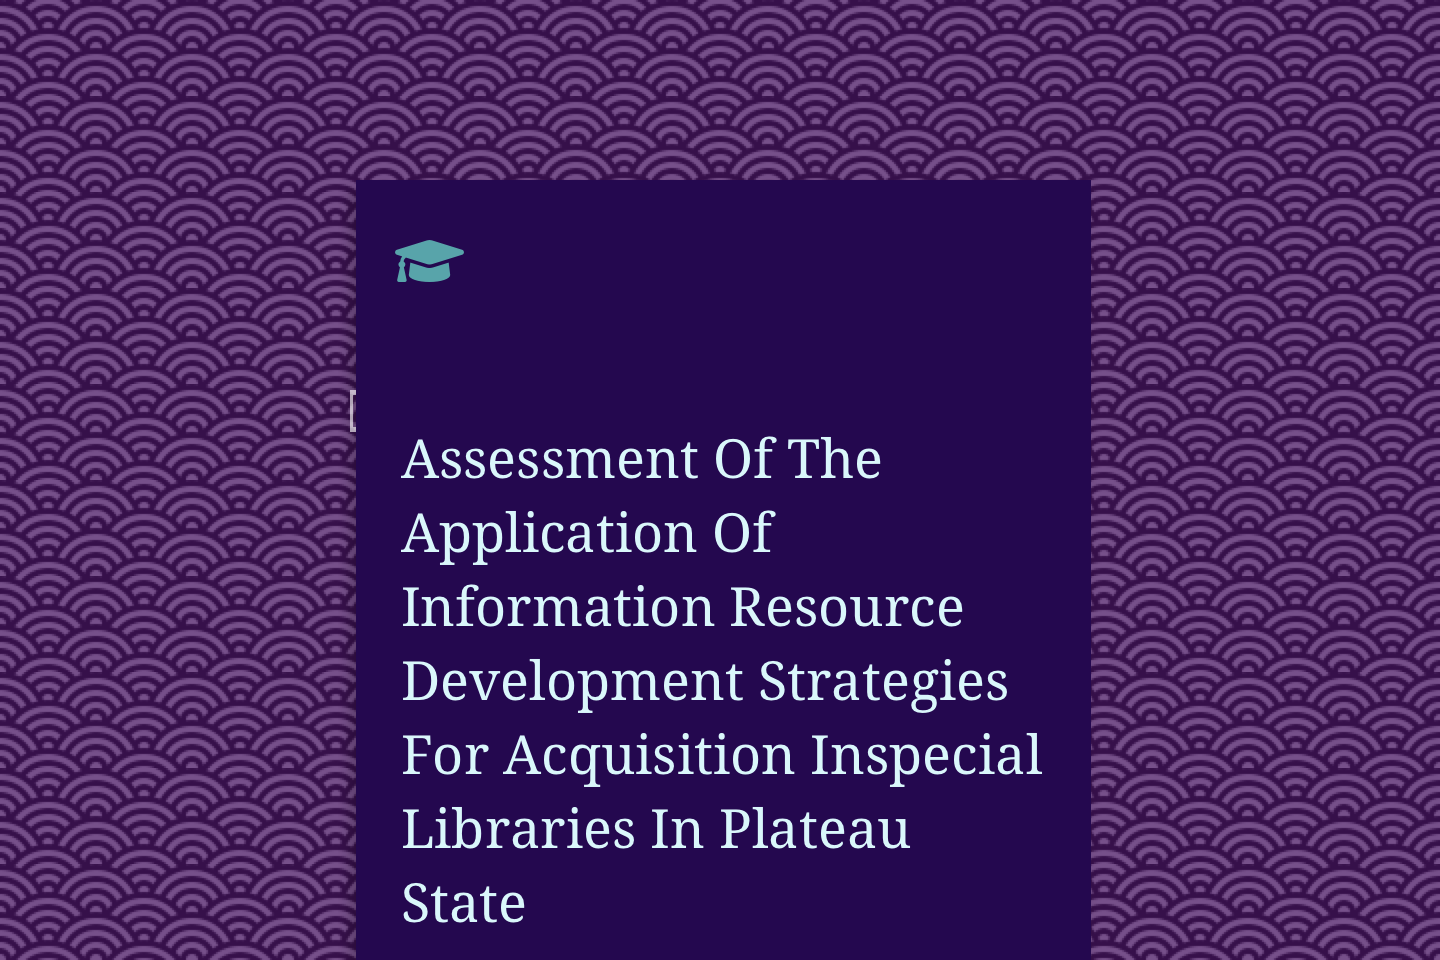 Assessment Of The Application Of Information Resource Development Strategies For Acquisition Inspecial Libraries In Plateau State